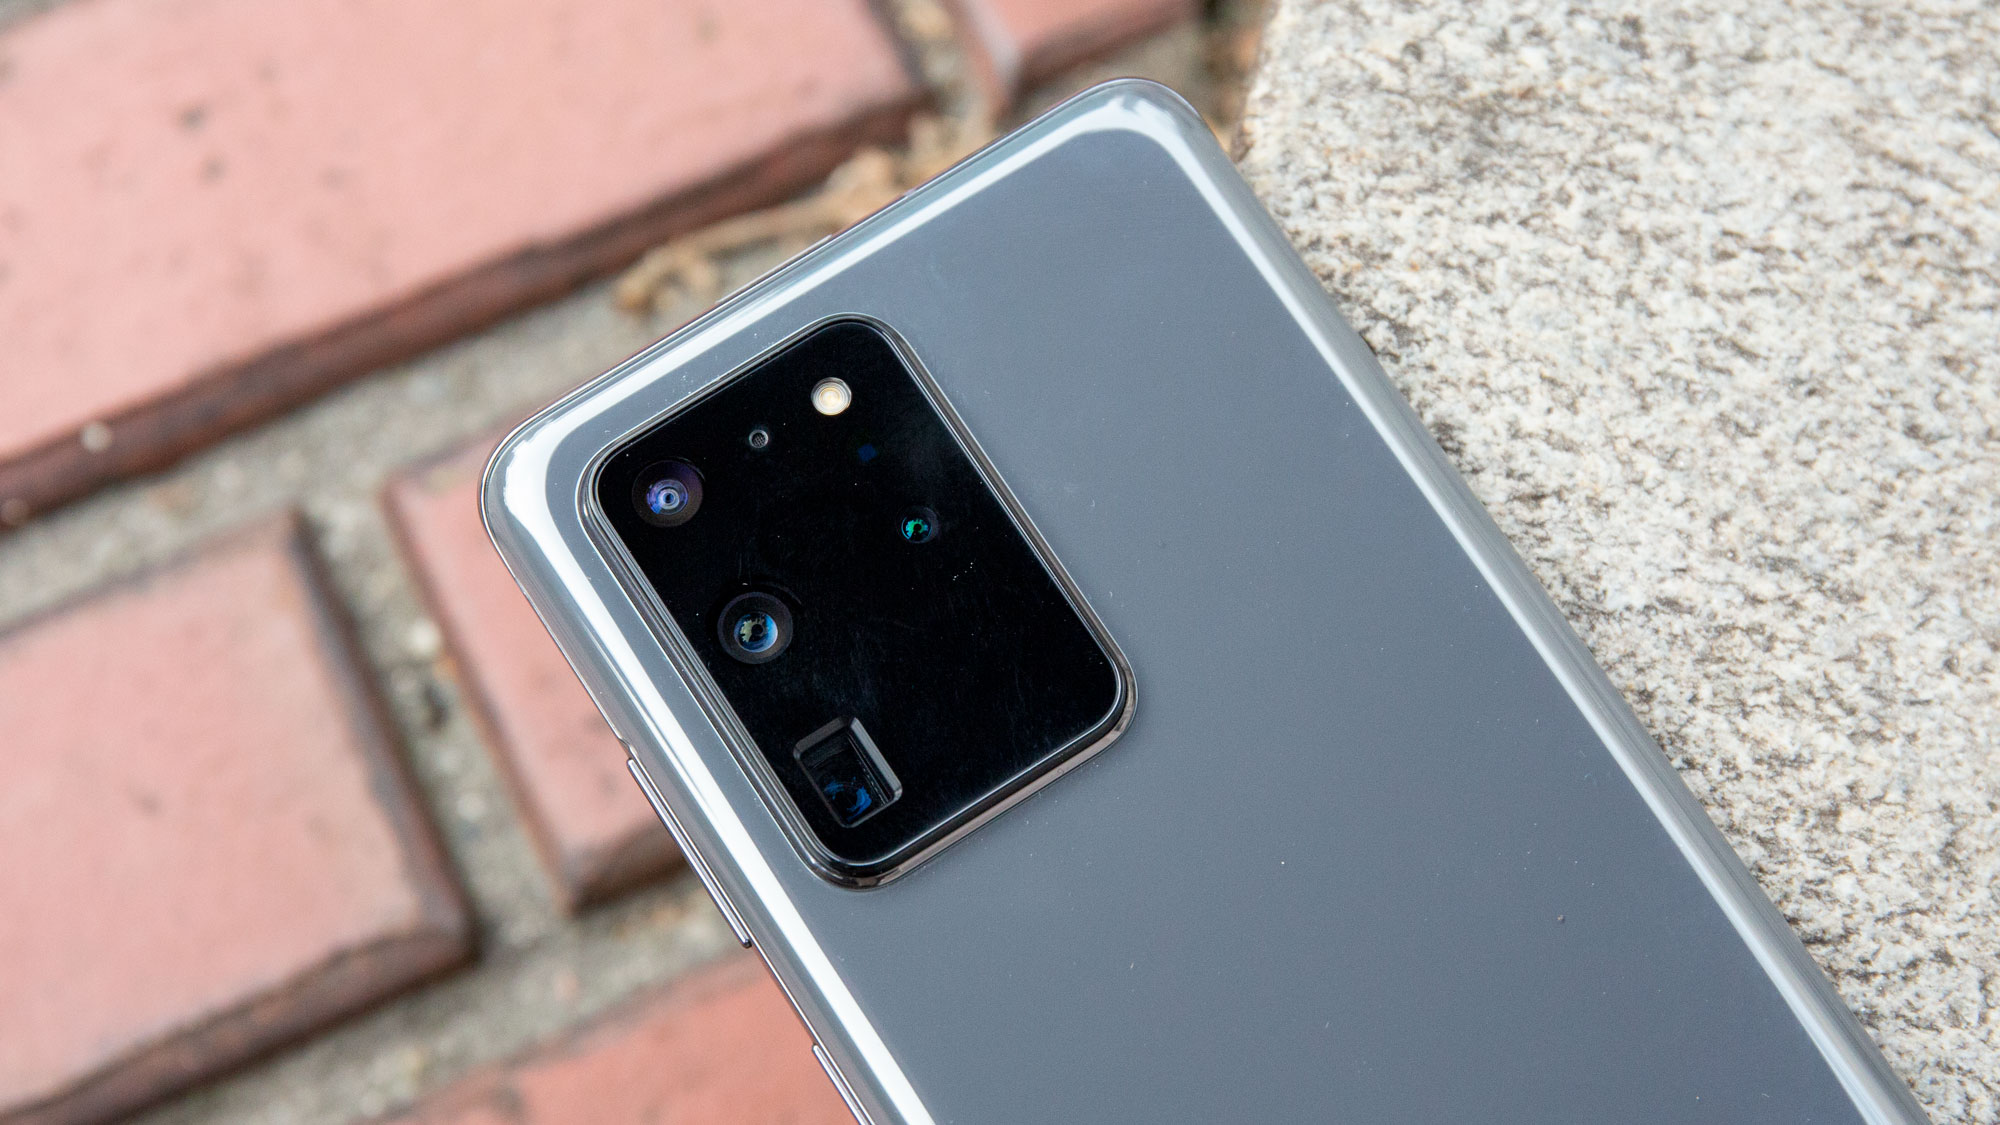 Best Flagship Phones 2021 Samsung Galaxy S30 may be the best camera phone of 2021, according